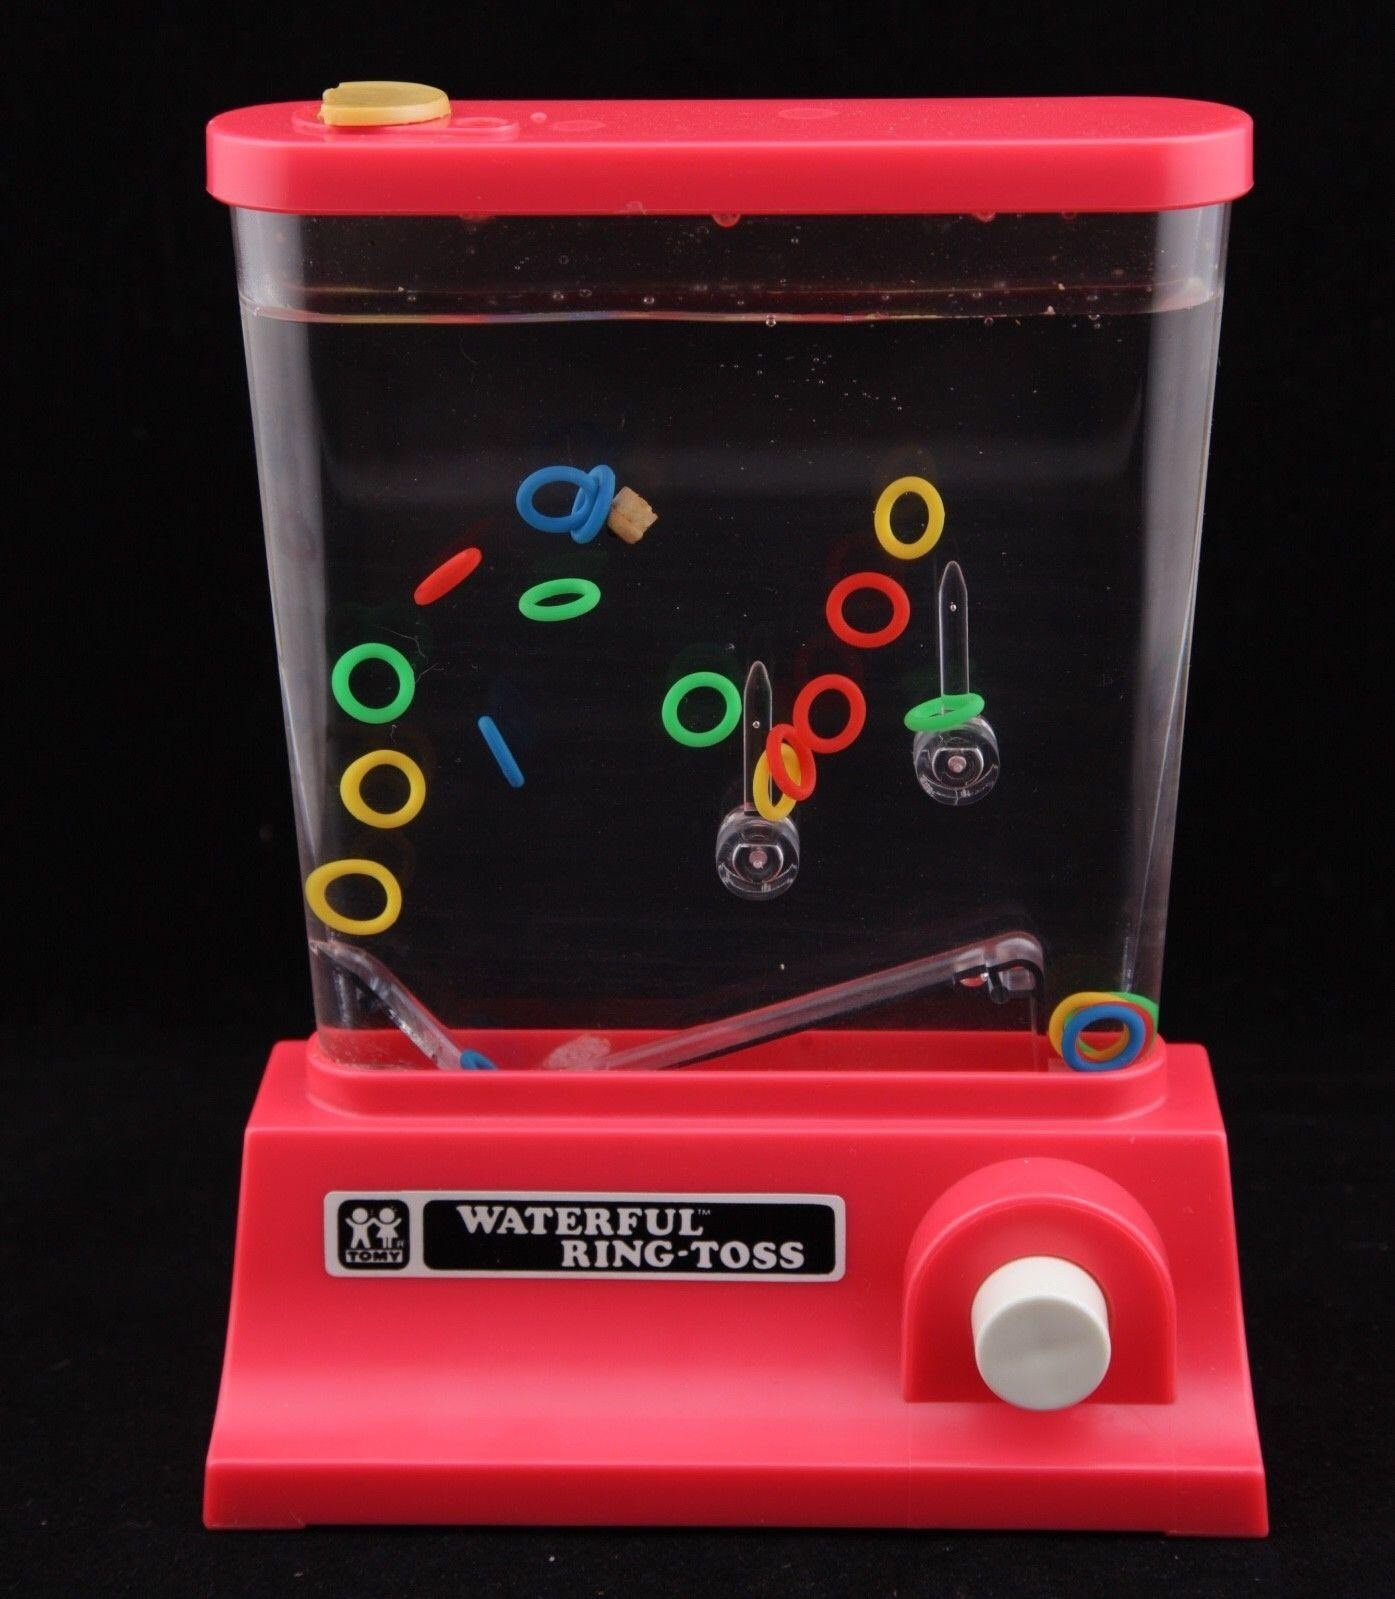 Waterful ring toss game